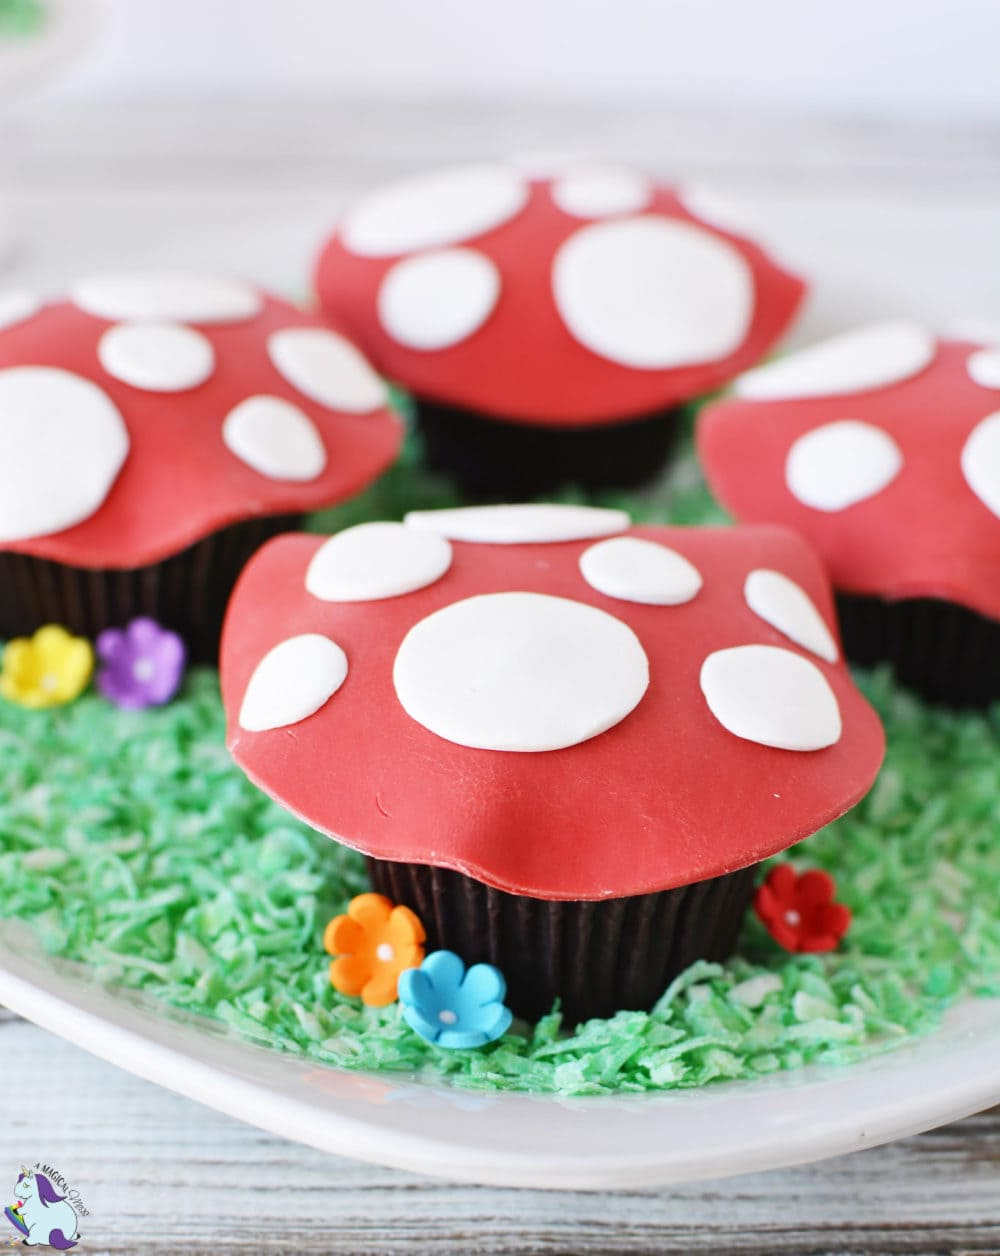 Toadstool cupcakes for a magical woodland fairy themed party!